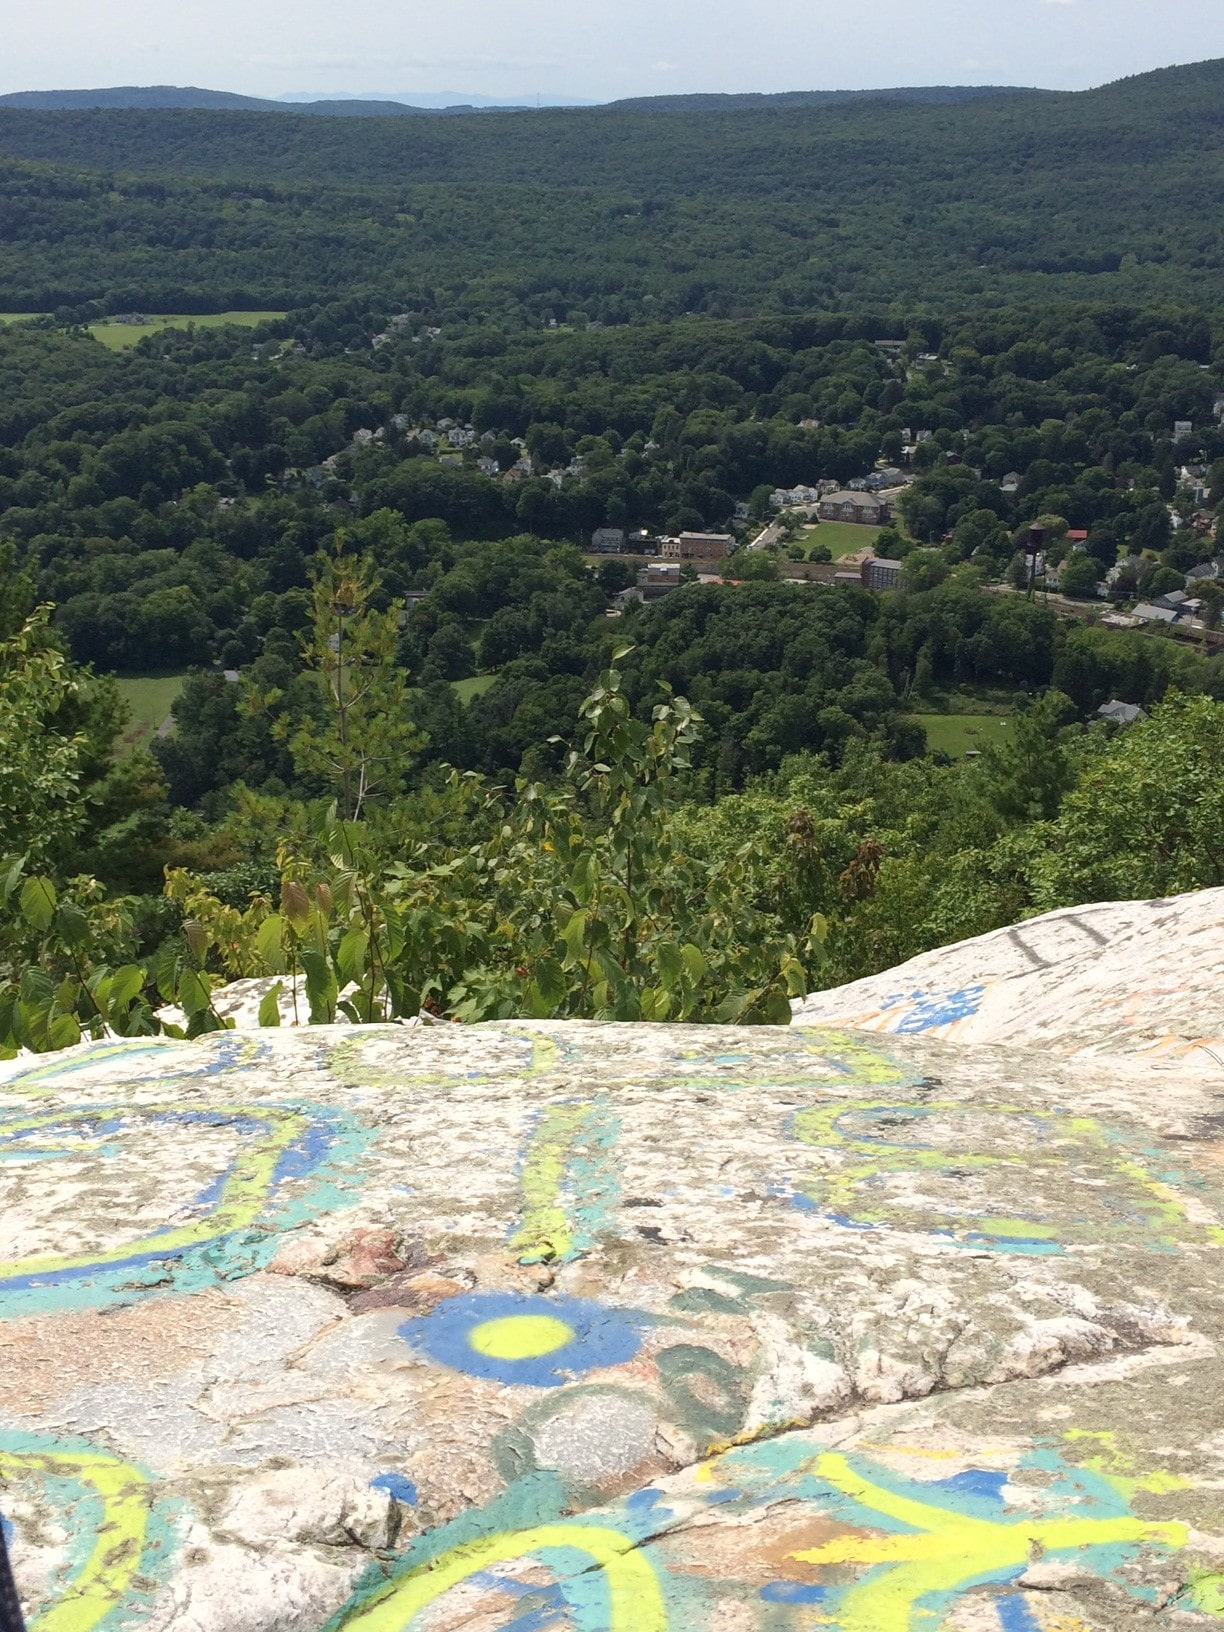 From Flag Rock, the village of Housatonic below. Photo: Heather Bellow